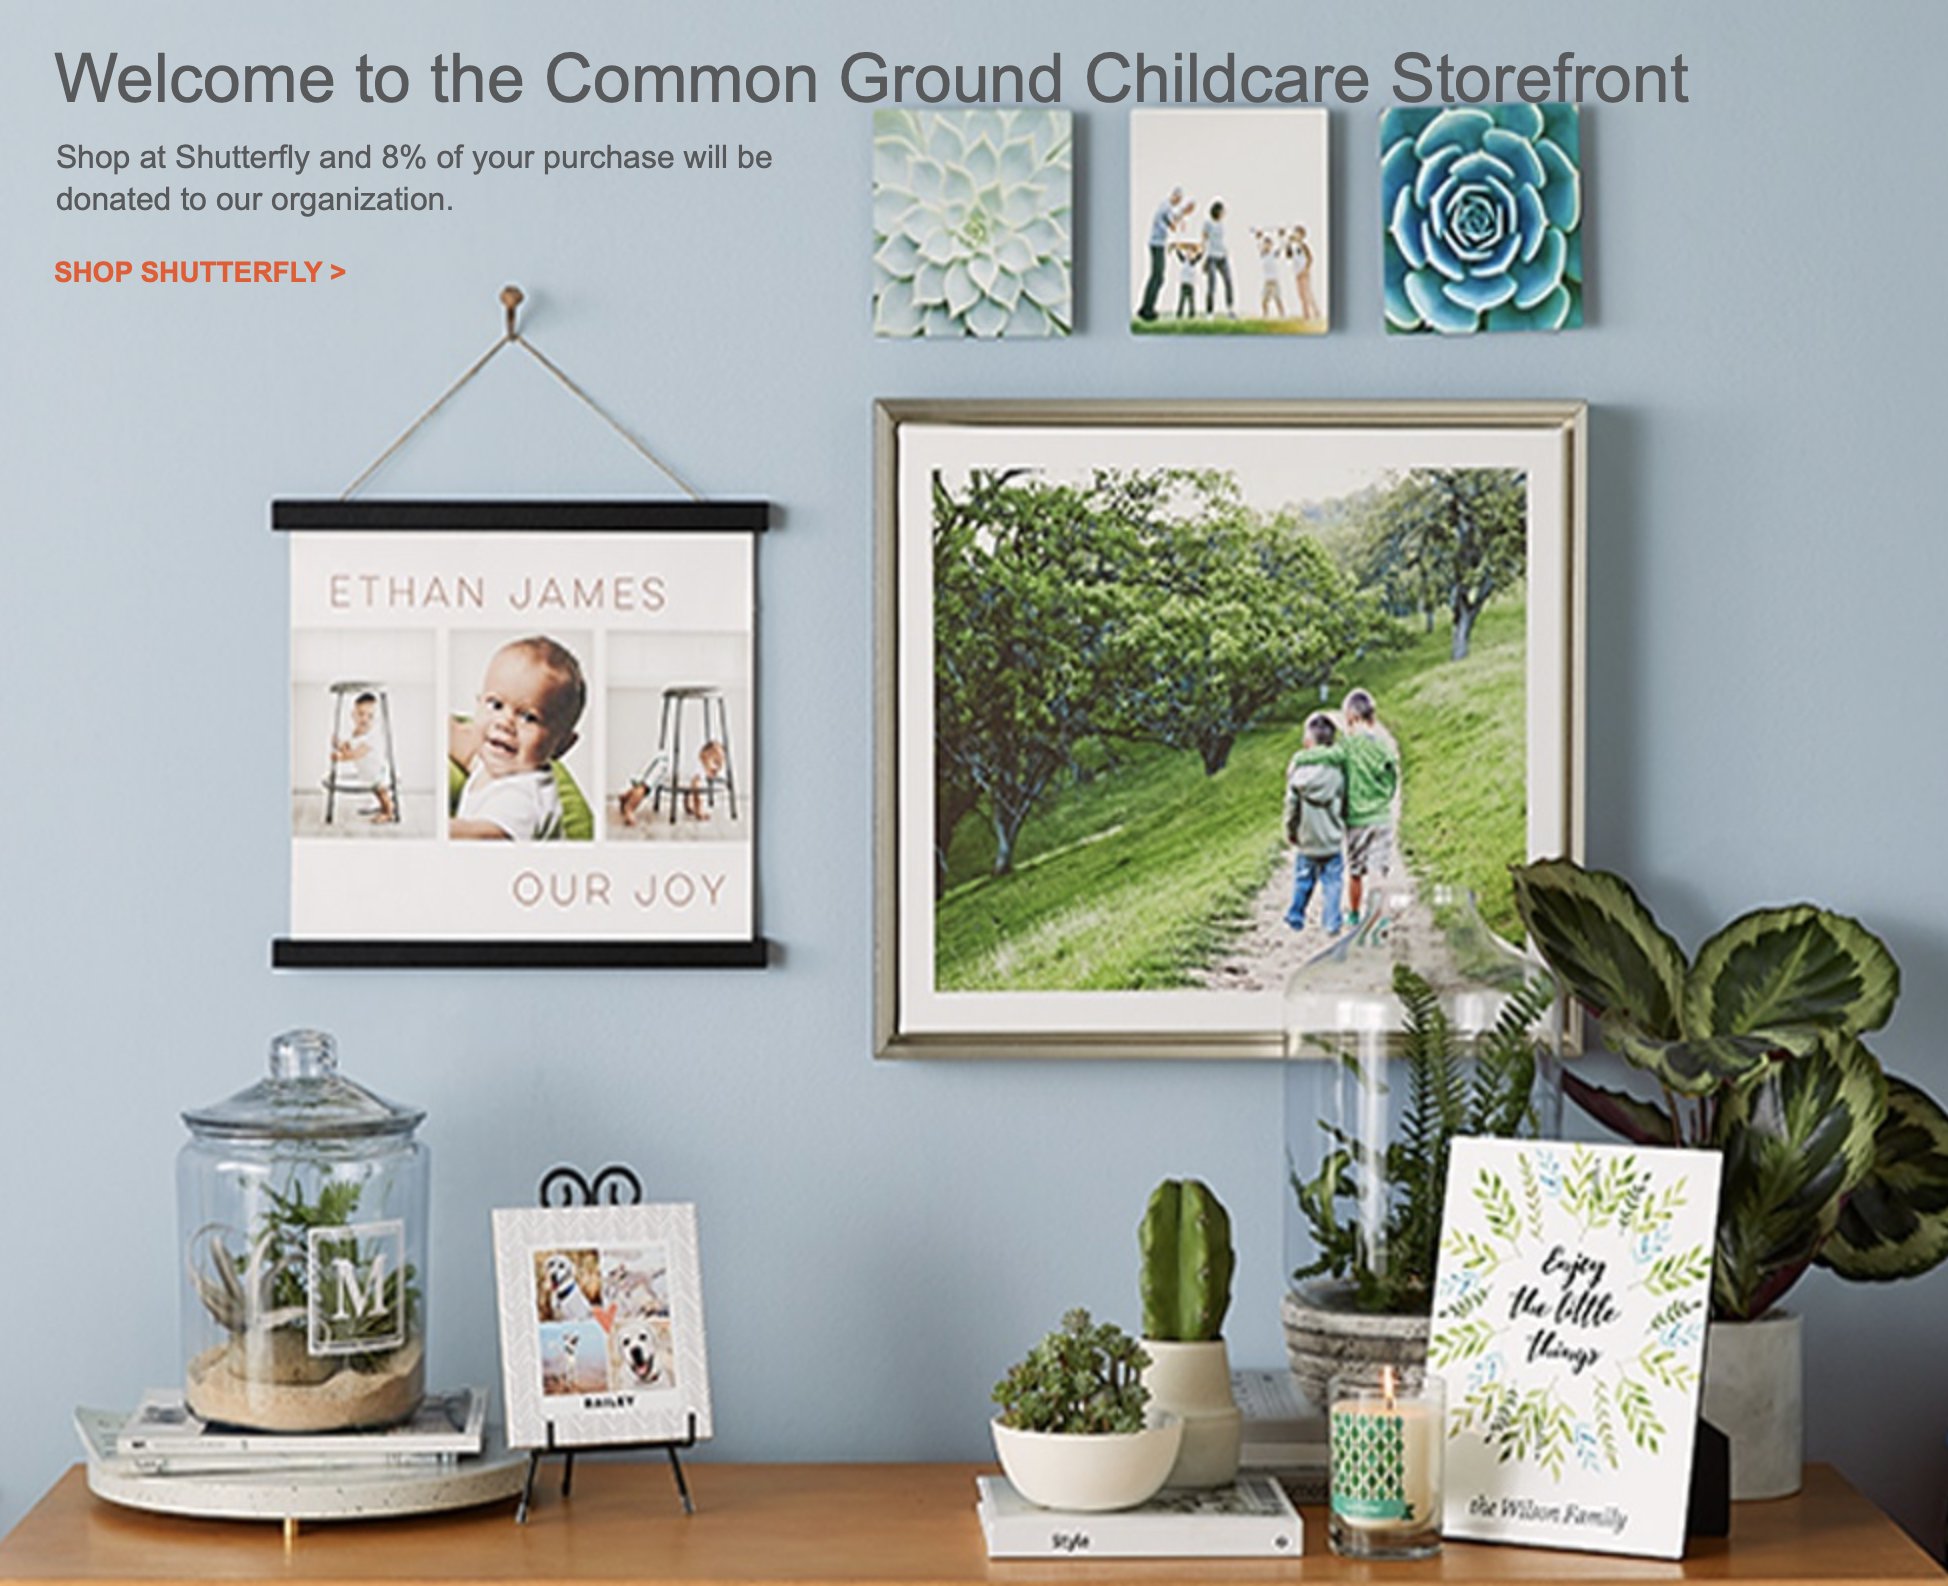 Shop our Shutterfly Store! - Get your photos off your phone and onto your walls! Shop this link: http://commonground.shutterflystorefront.comand support Common Ground in the process!!